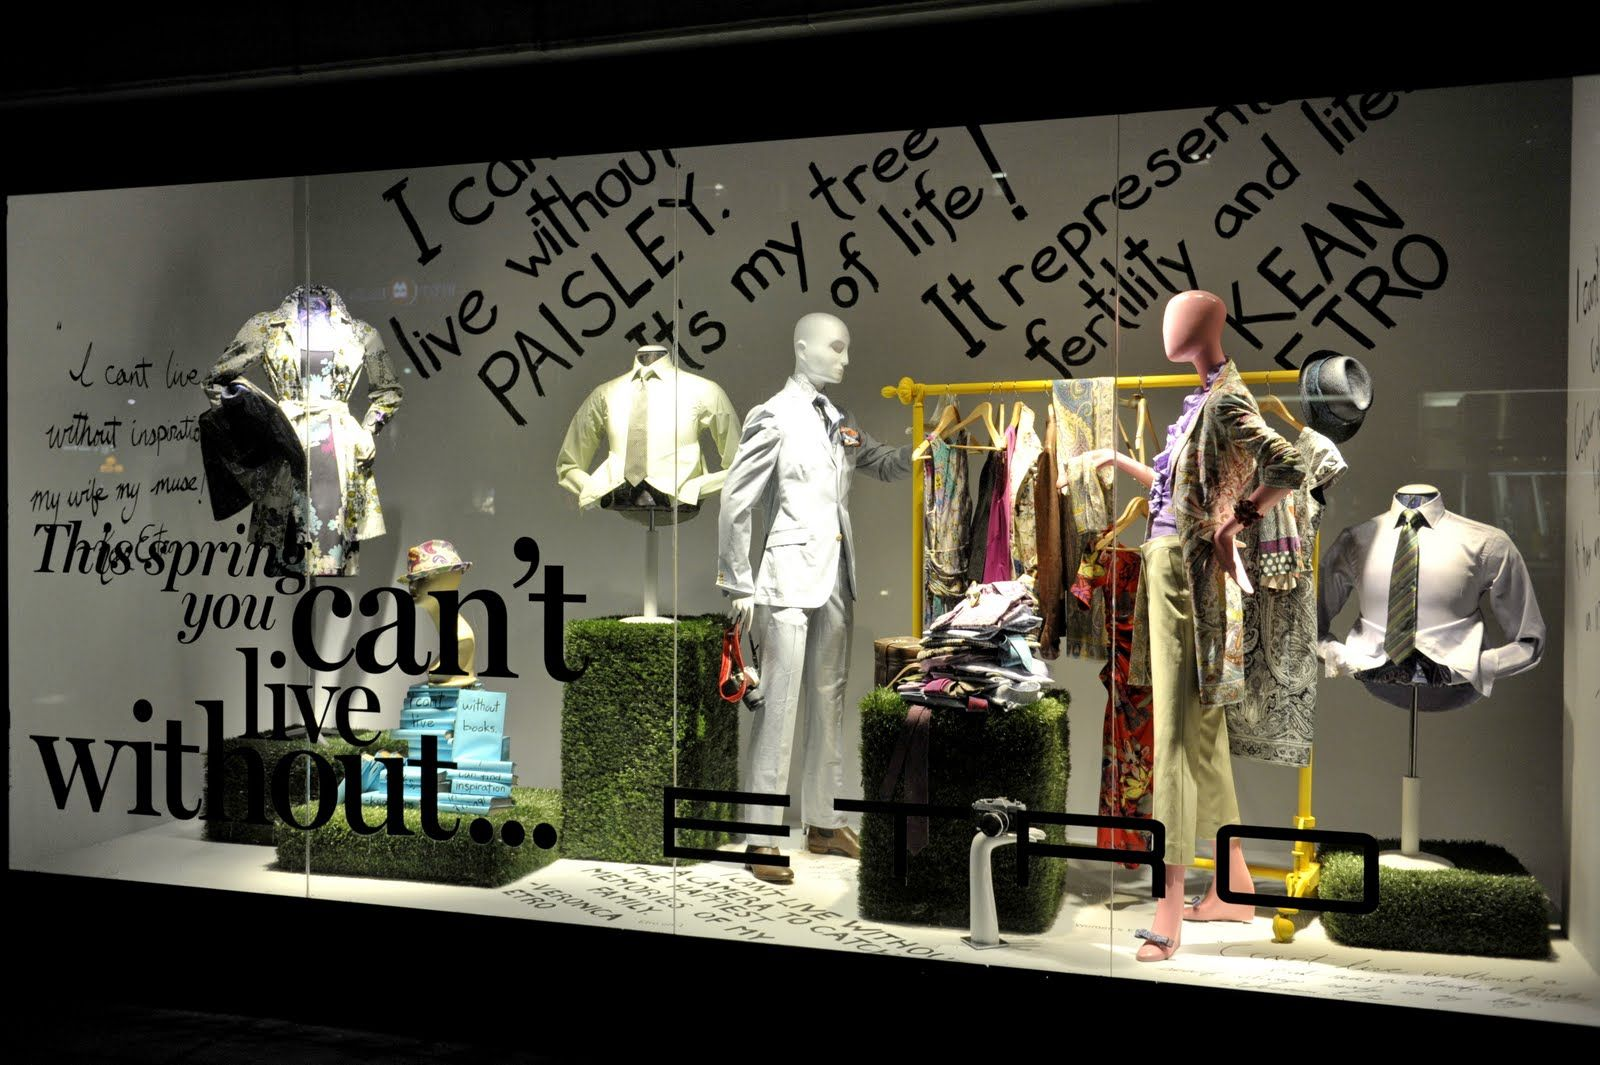 Window display ideas  pin by untriedshop on windows  pinterest  window display retail